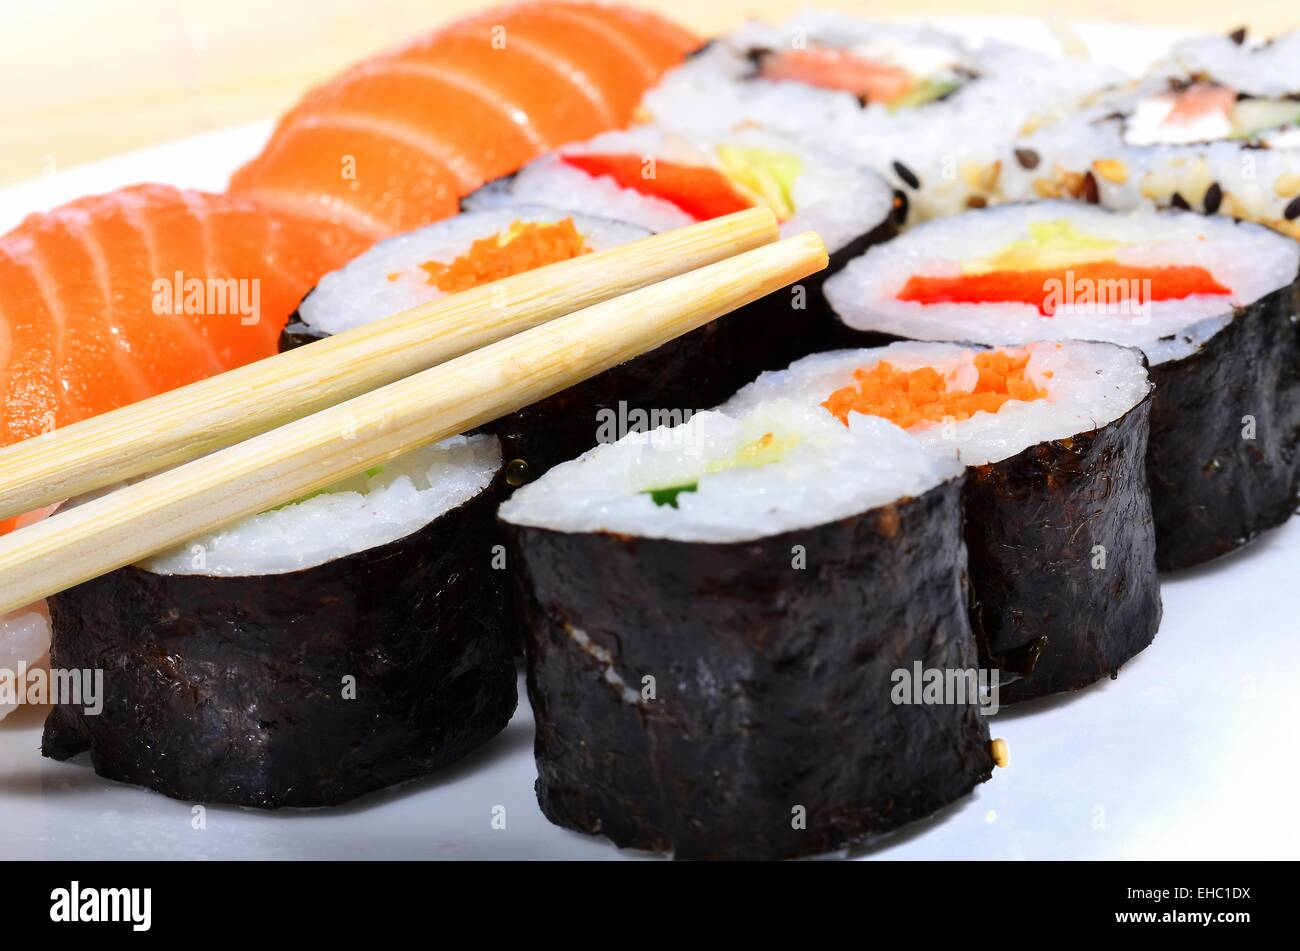 Sushi Meal Variety.sushi meal variety with chinese sticks next to them - Stock Image